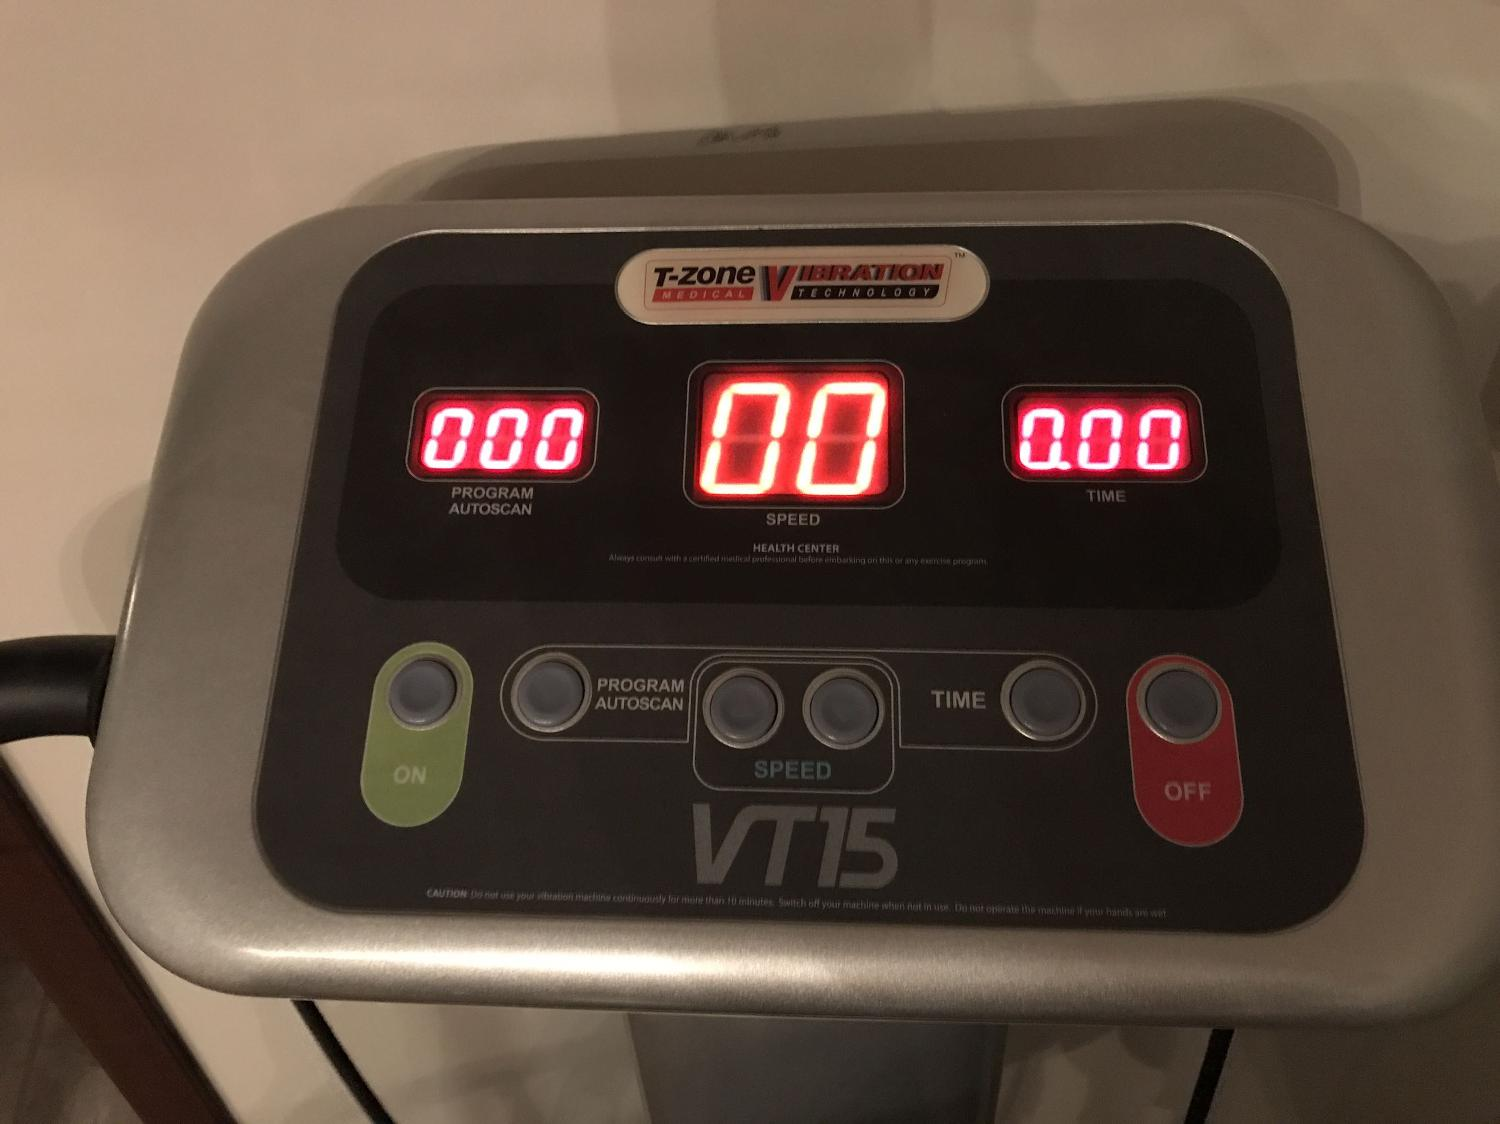 VT-15 Vibration Machine